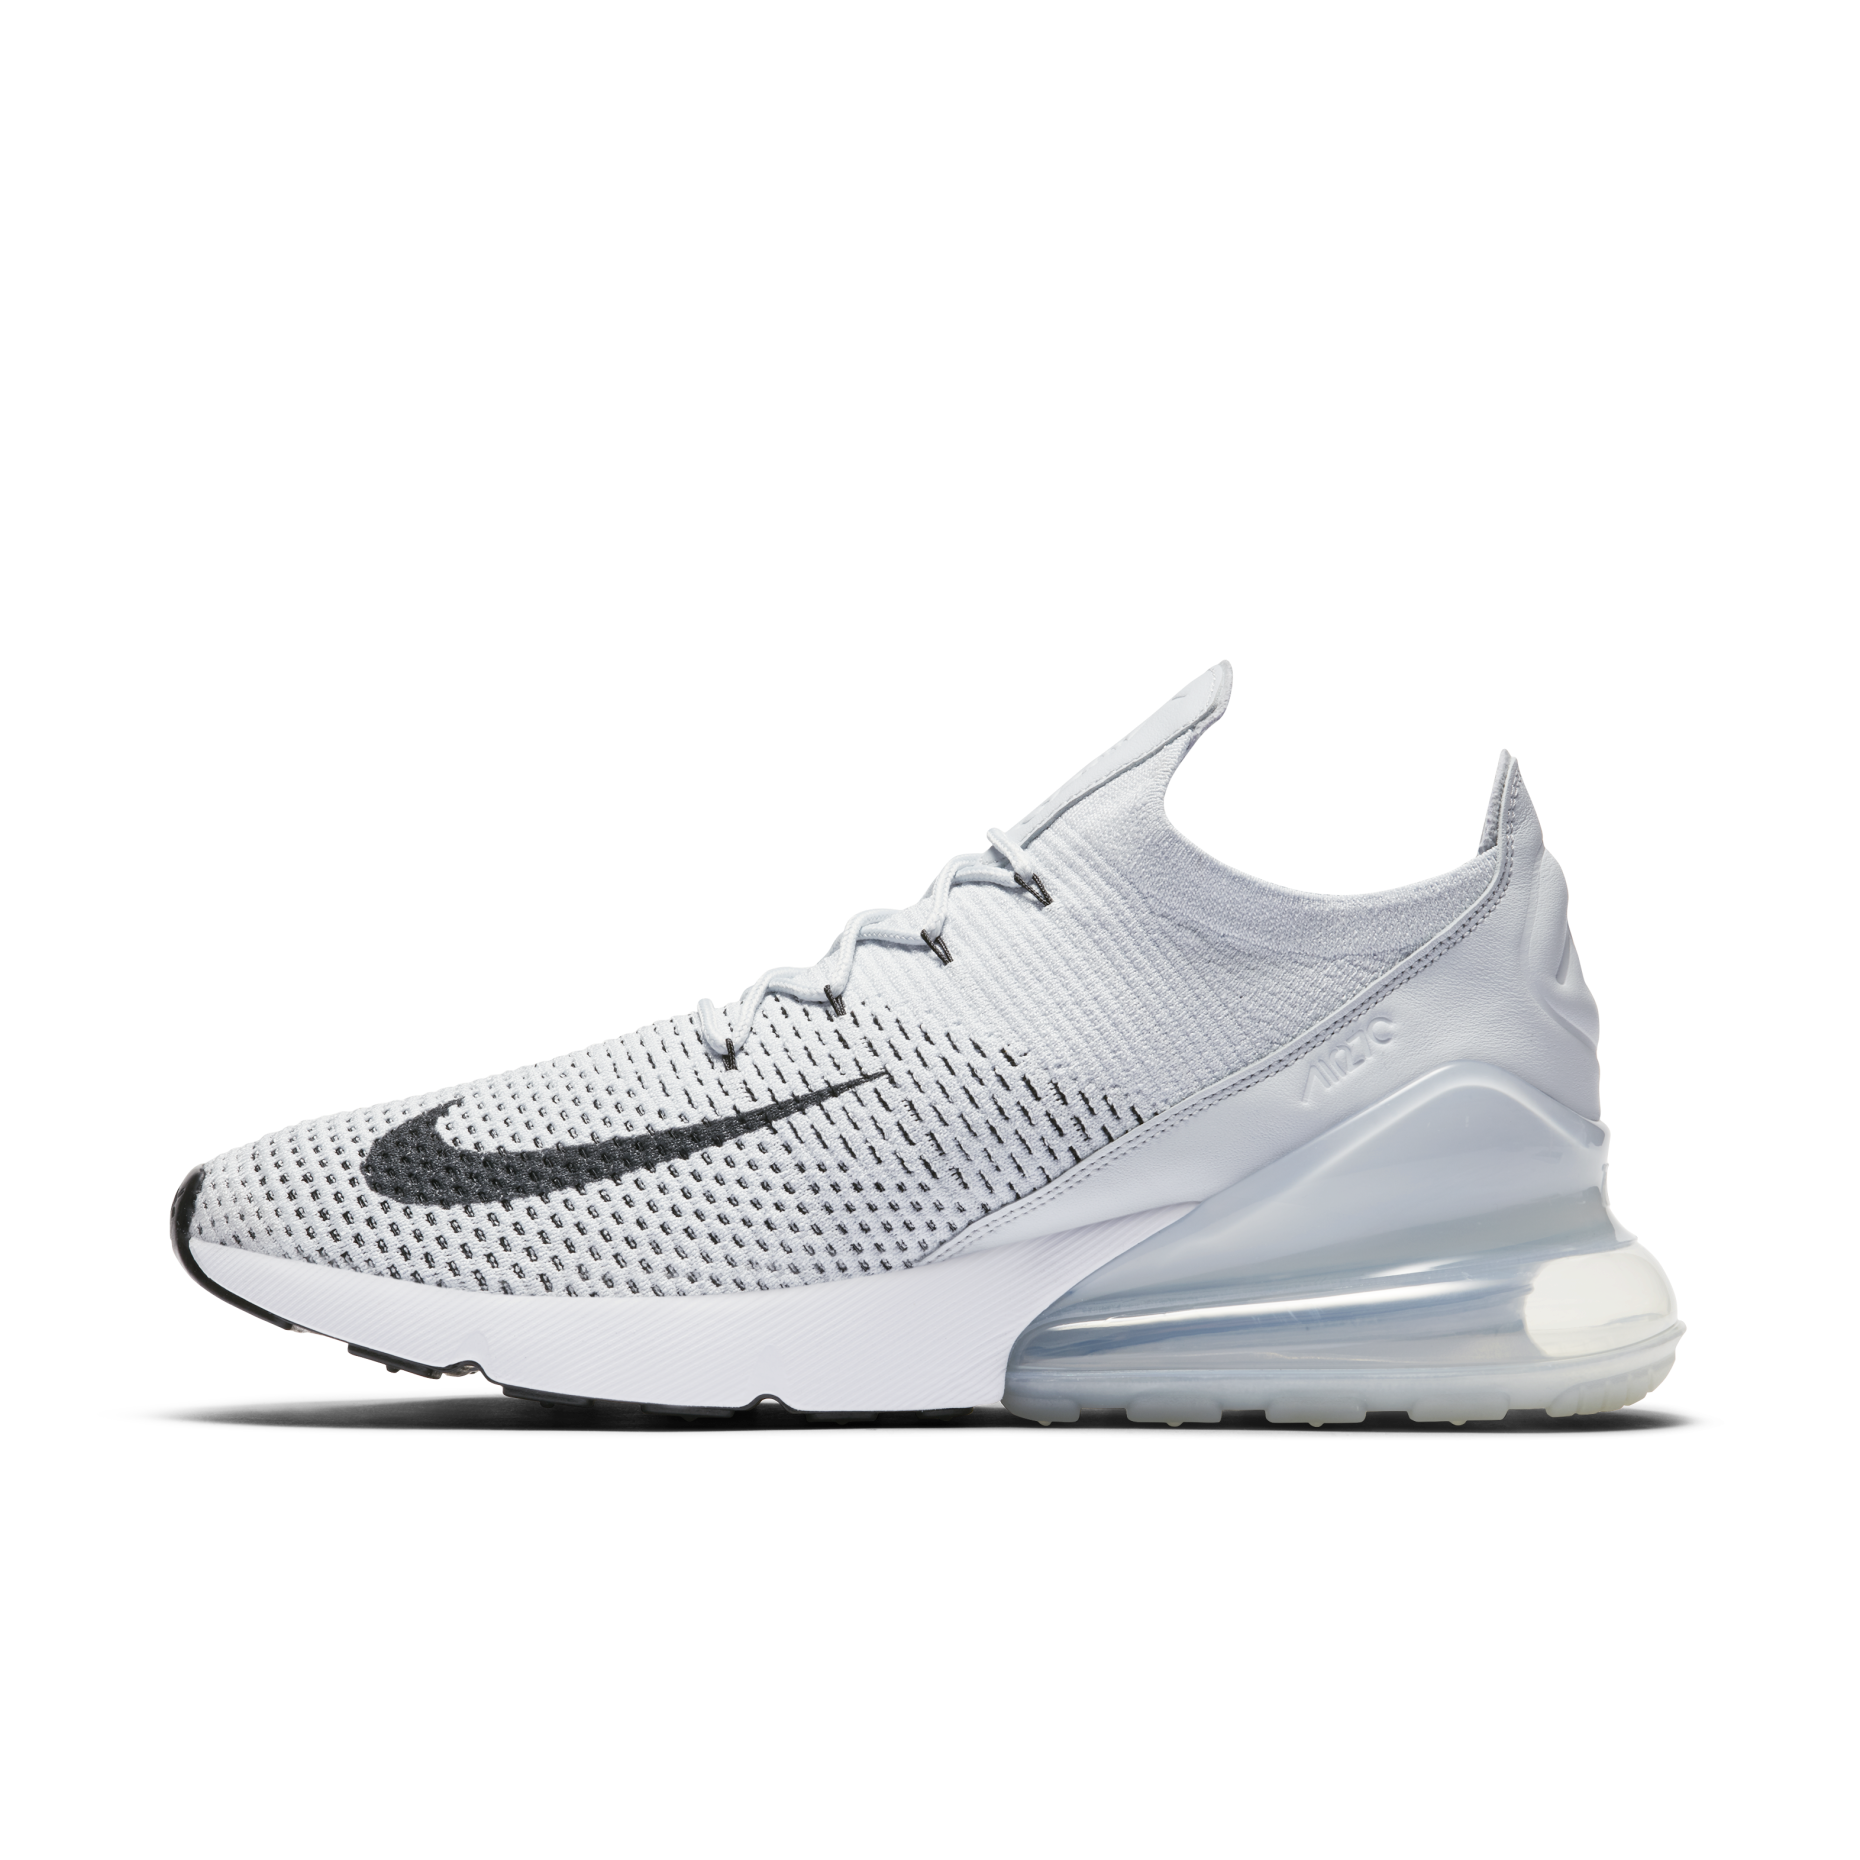 low priced 24681 f5198 Nike Air Max 270 Flyknit Pure Platinum Black AO1023-003 1.png v 1551782743